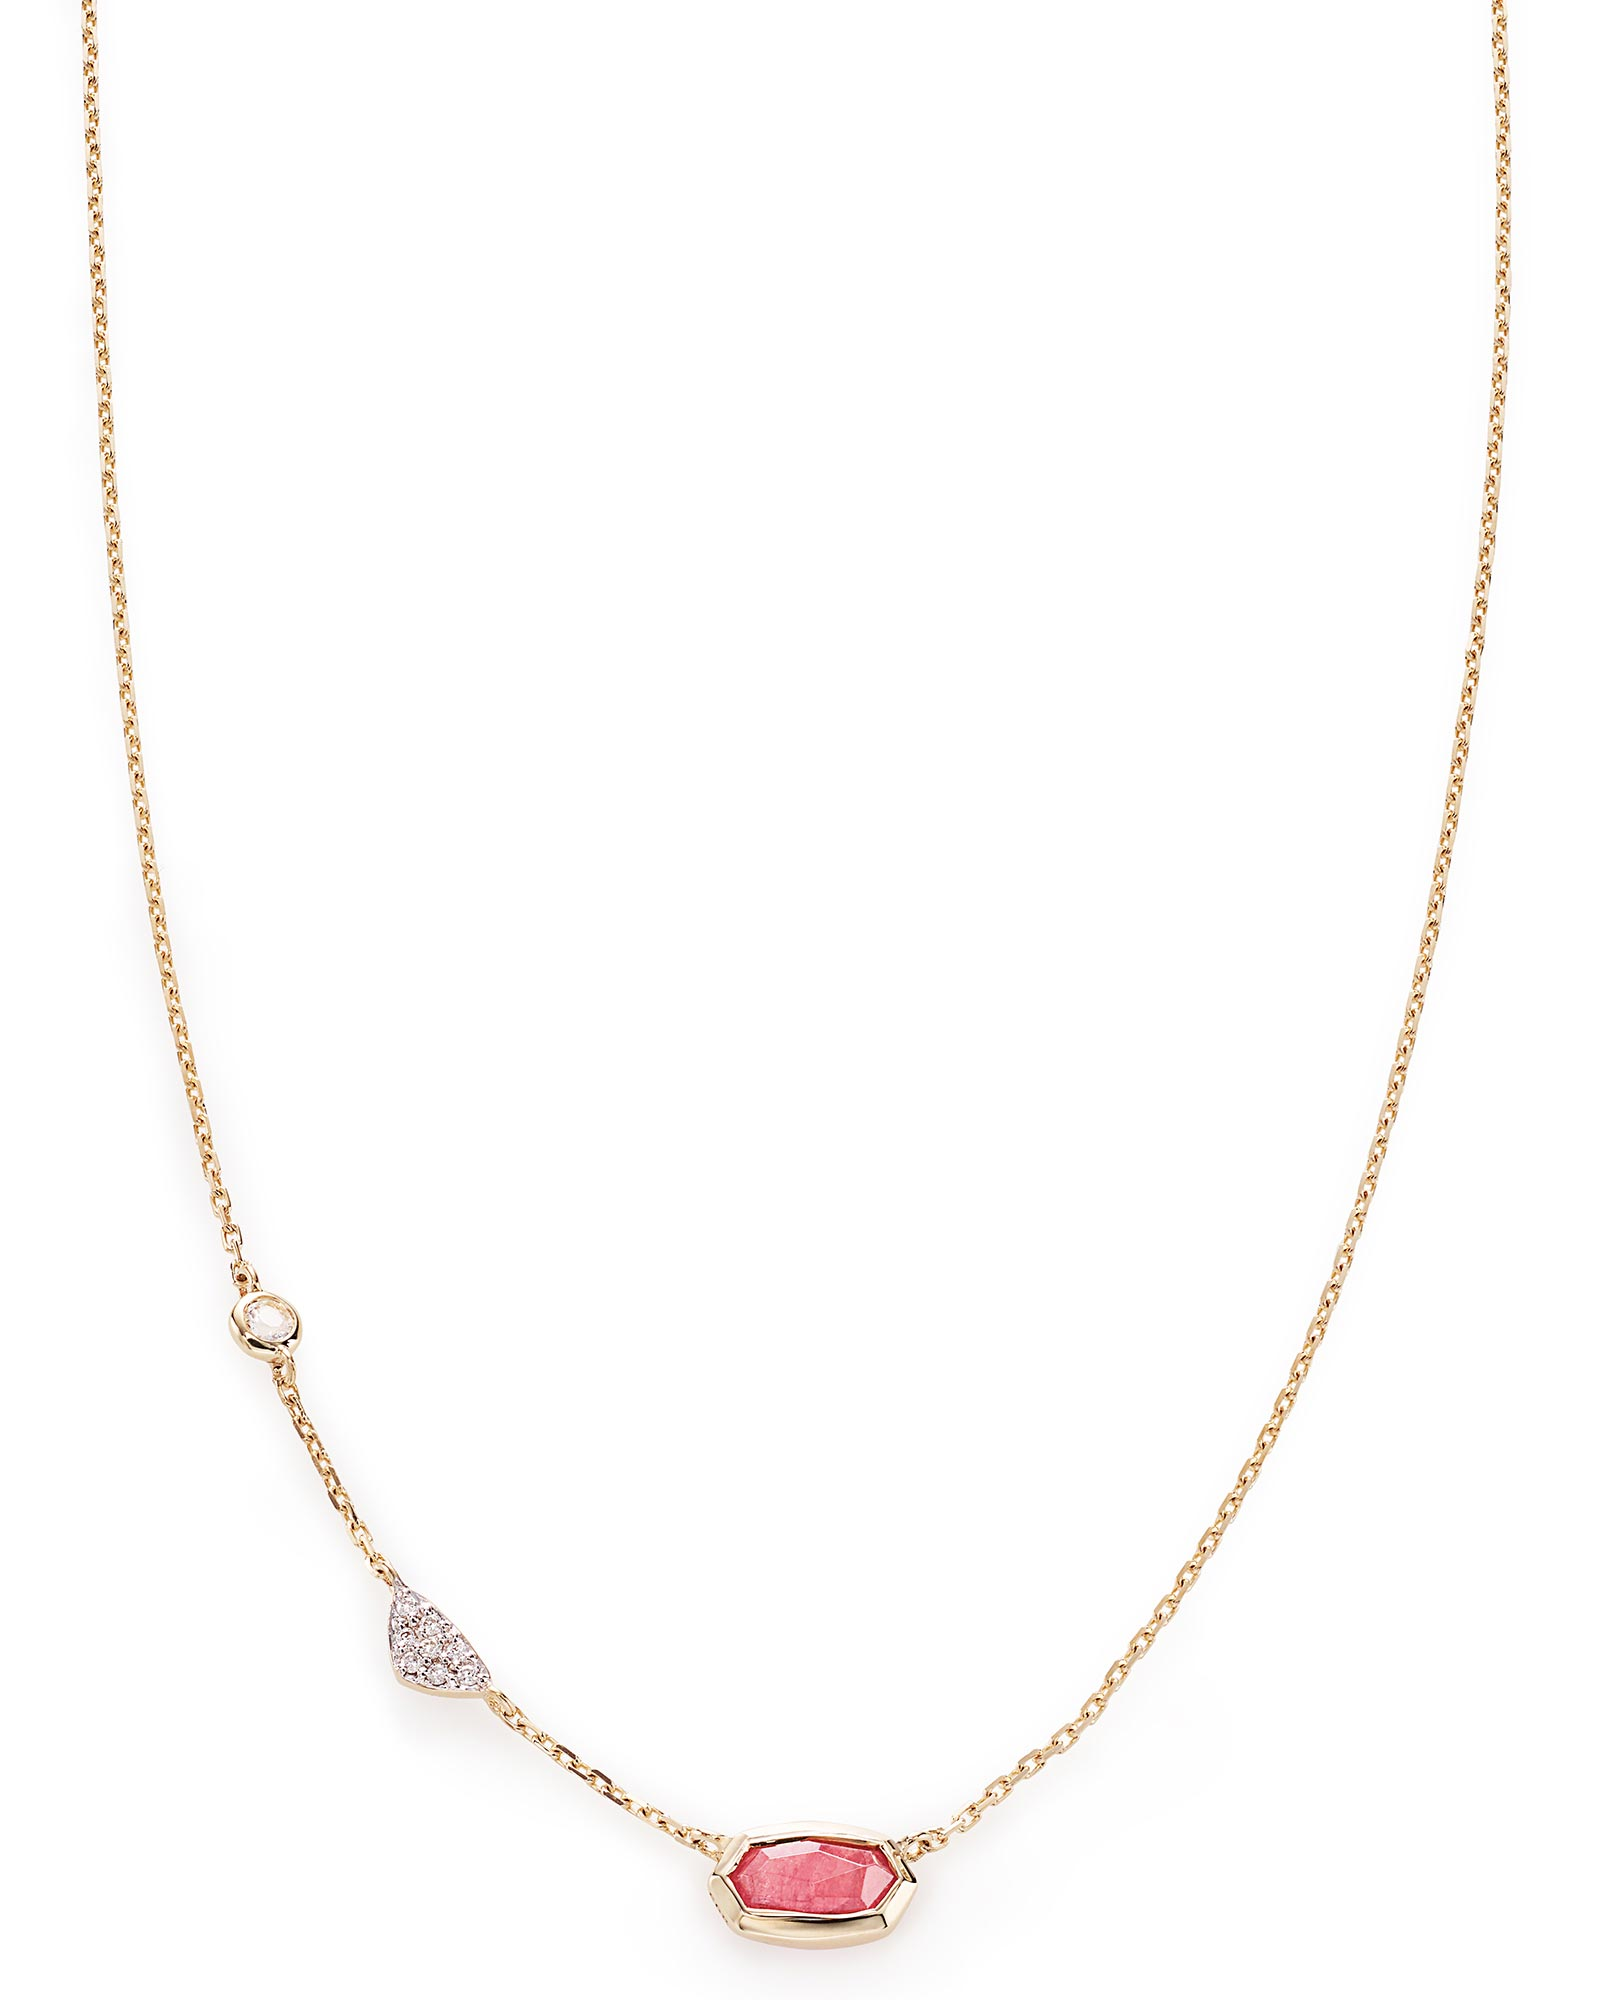 Aryn Pendant Necklace in Pink Tourmaline and 14k Yellow Gold